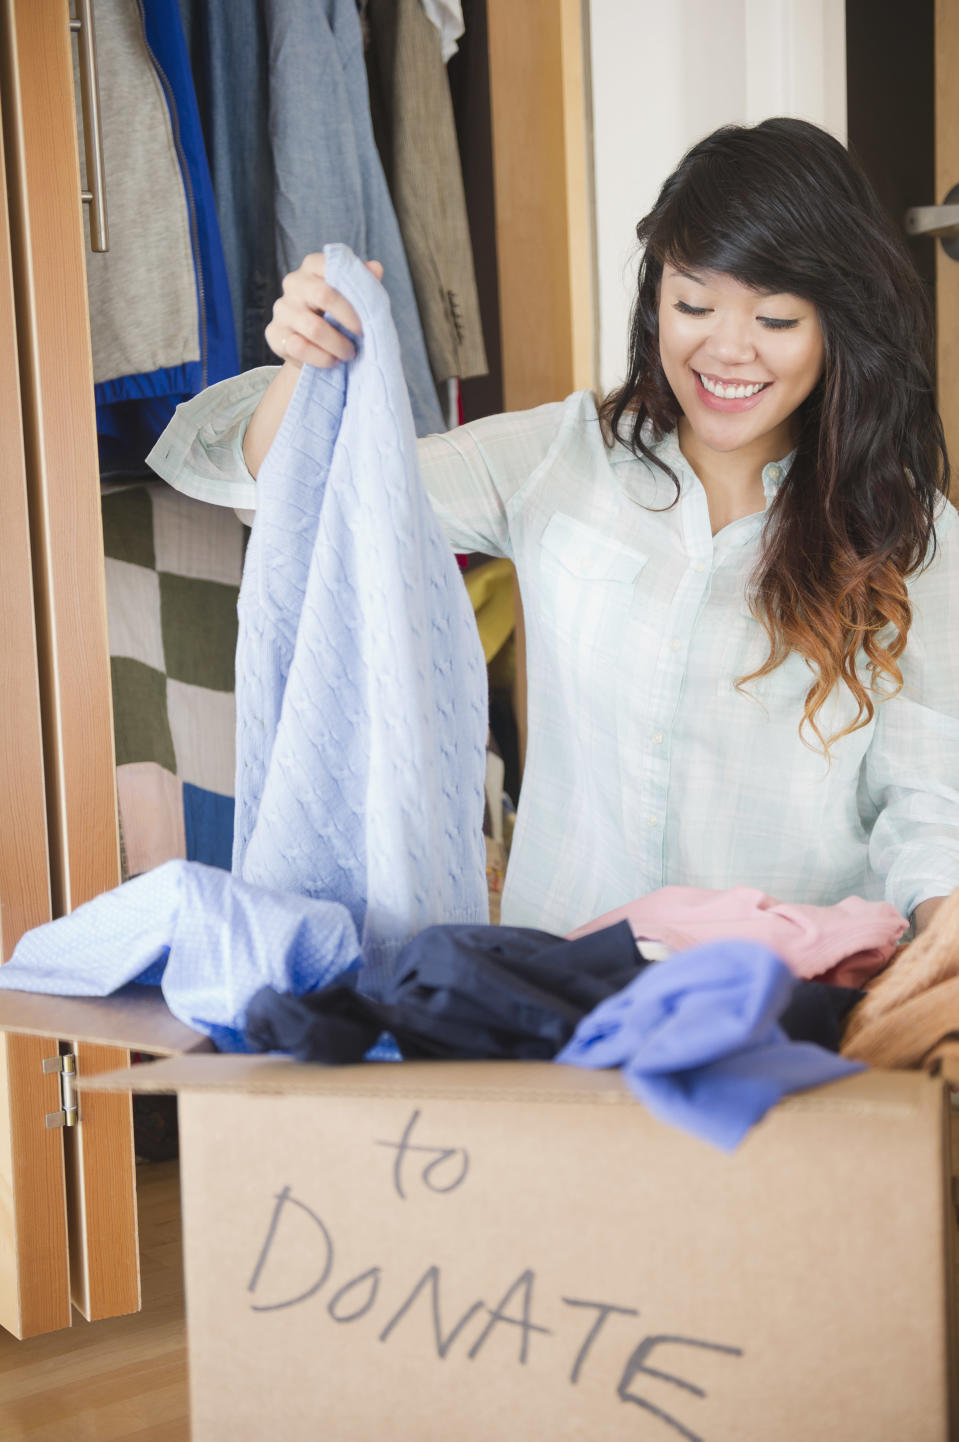 Donating clothes is a good way to feel good about getting rid of items. Photo: Getty